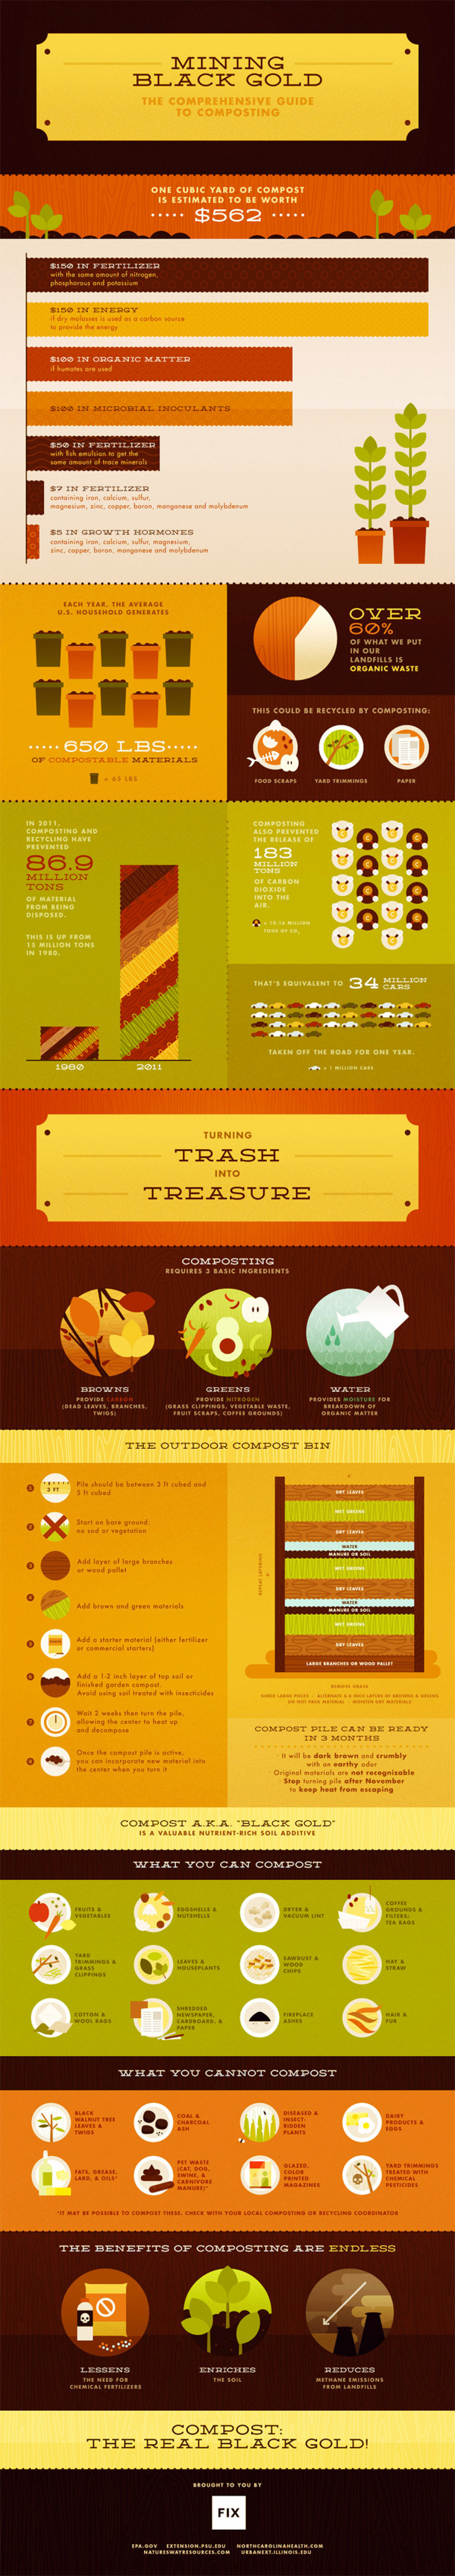 Mining Black Gold: The Comprehensive Guide to Composting Infographic